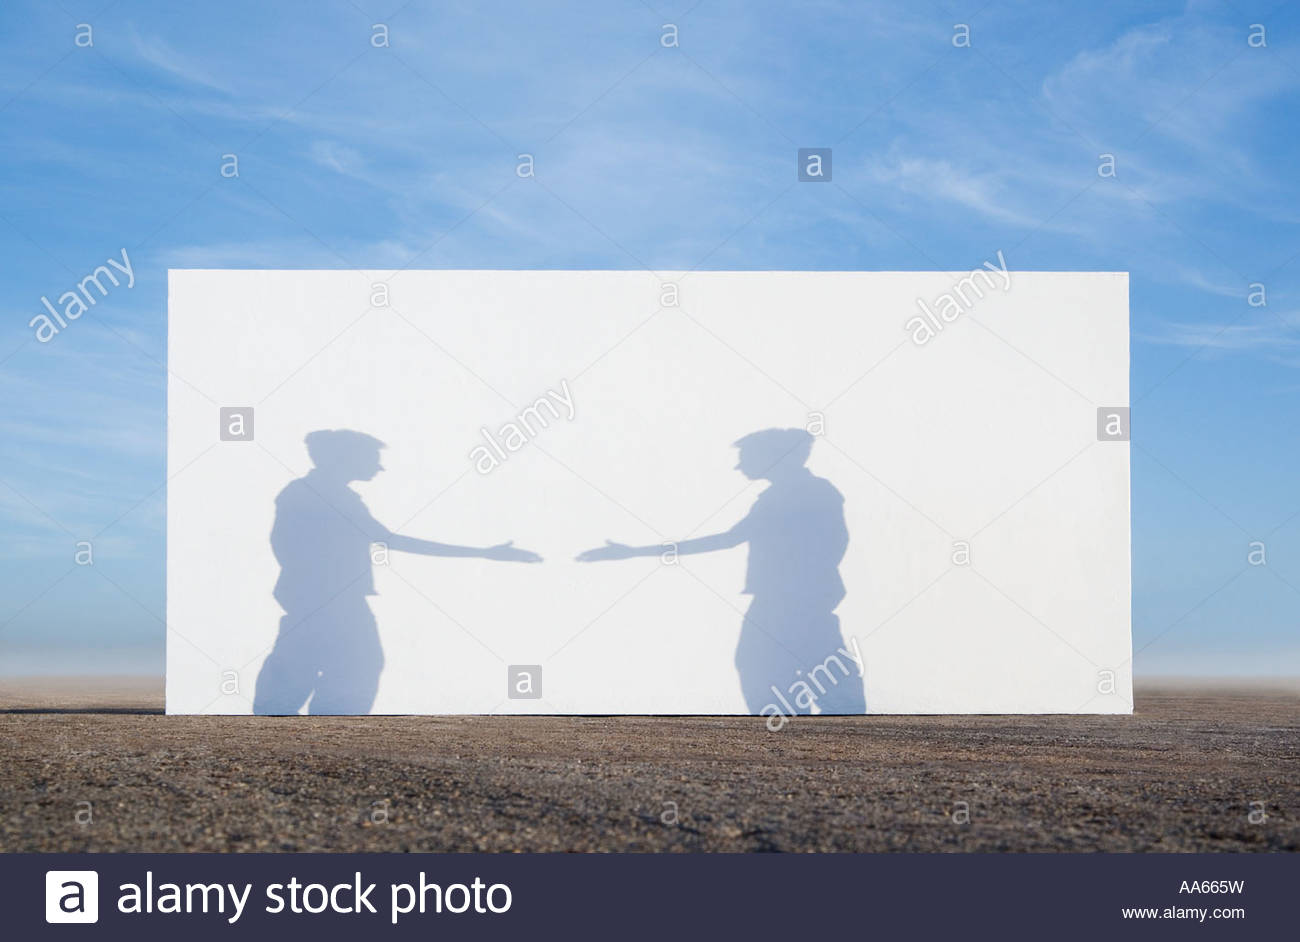 Man outdoors with hand extended in front of white wall - Stock Image